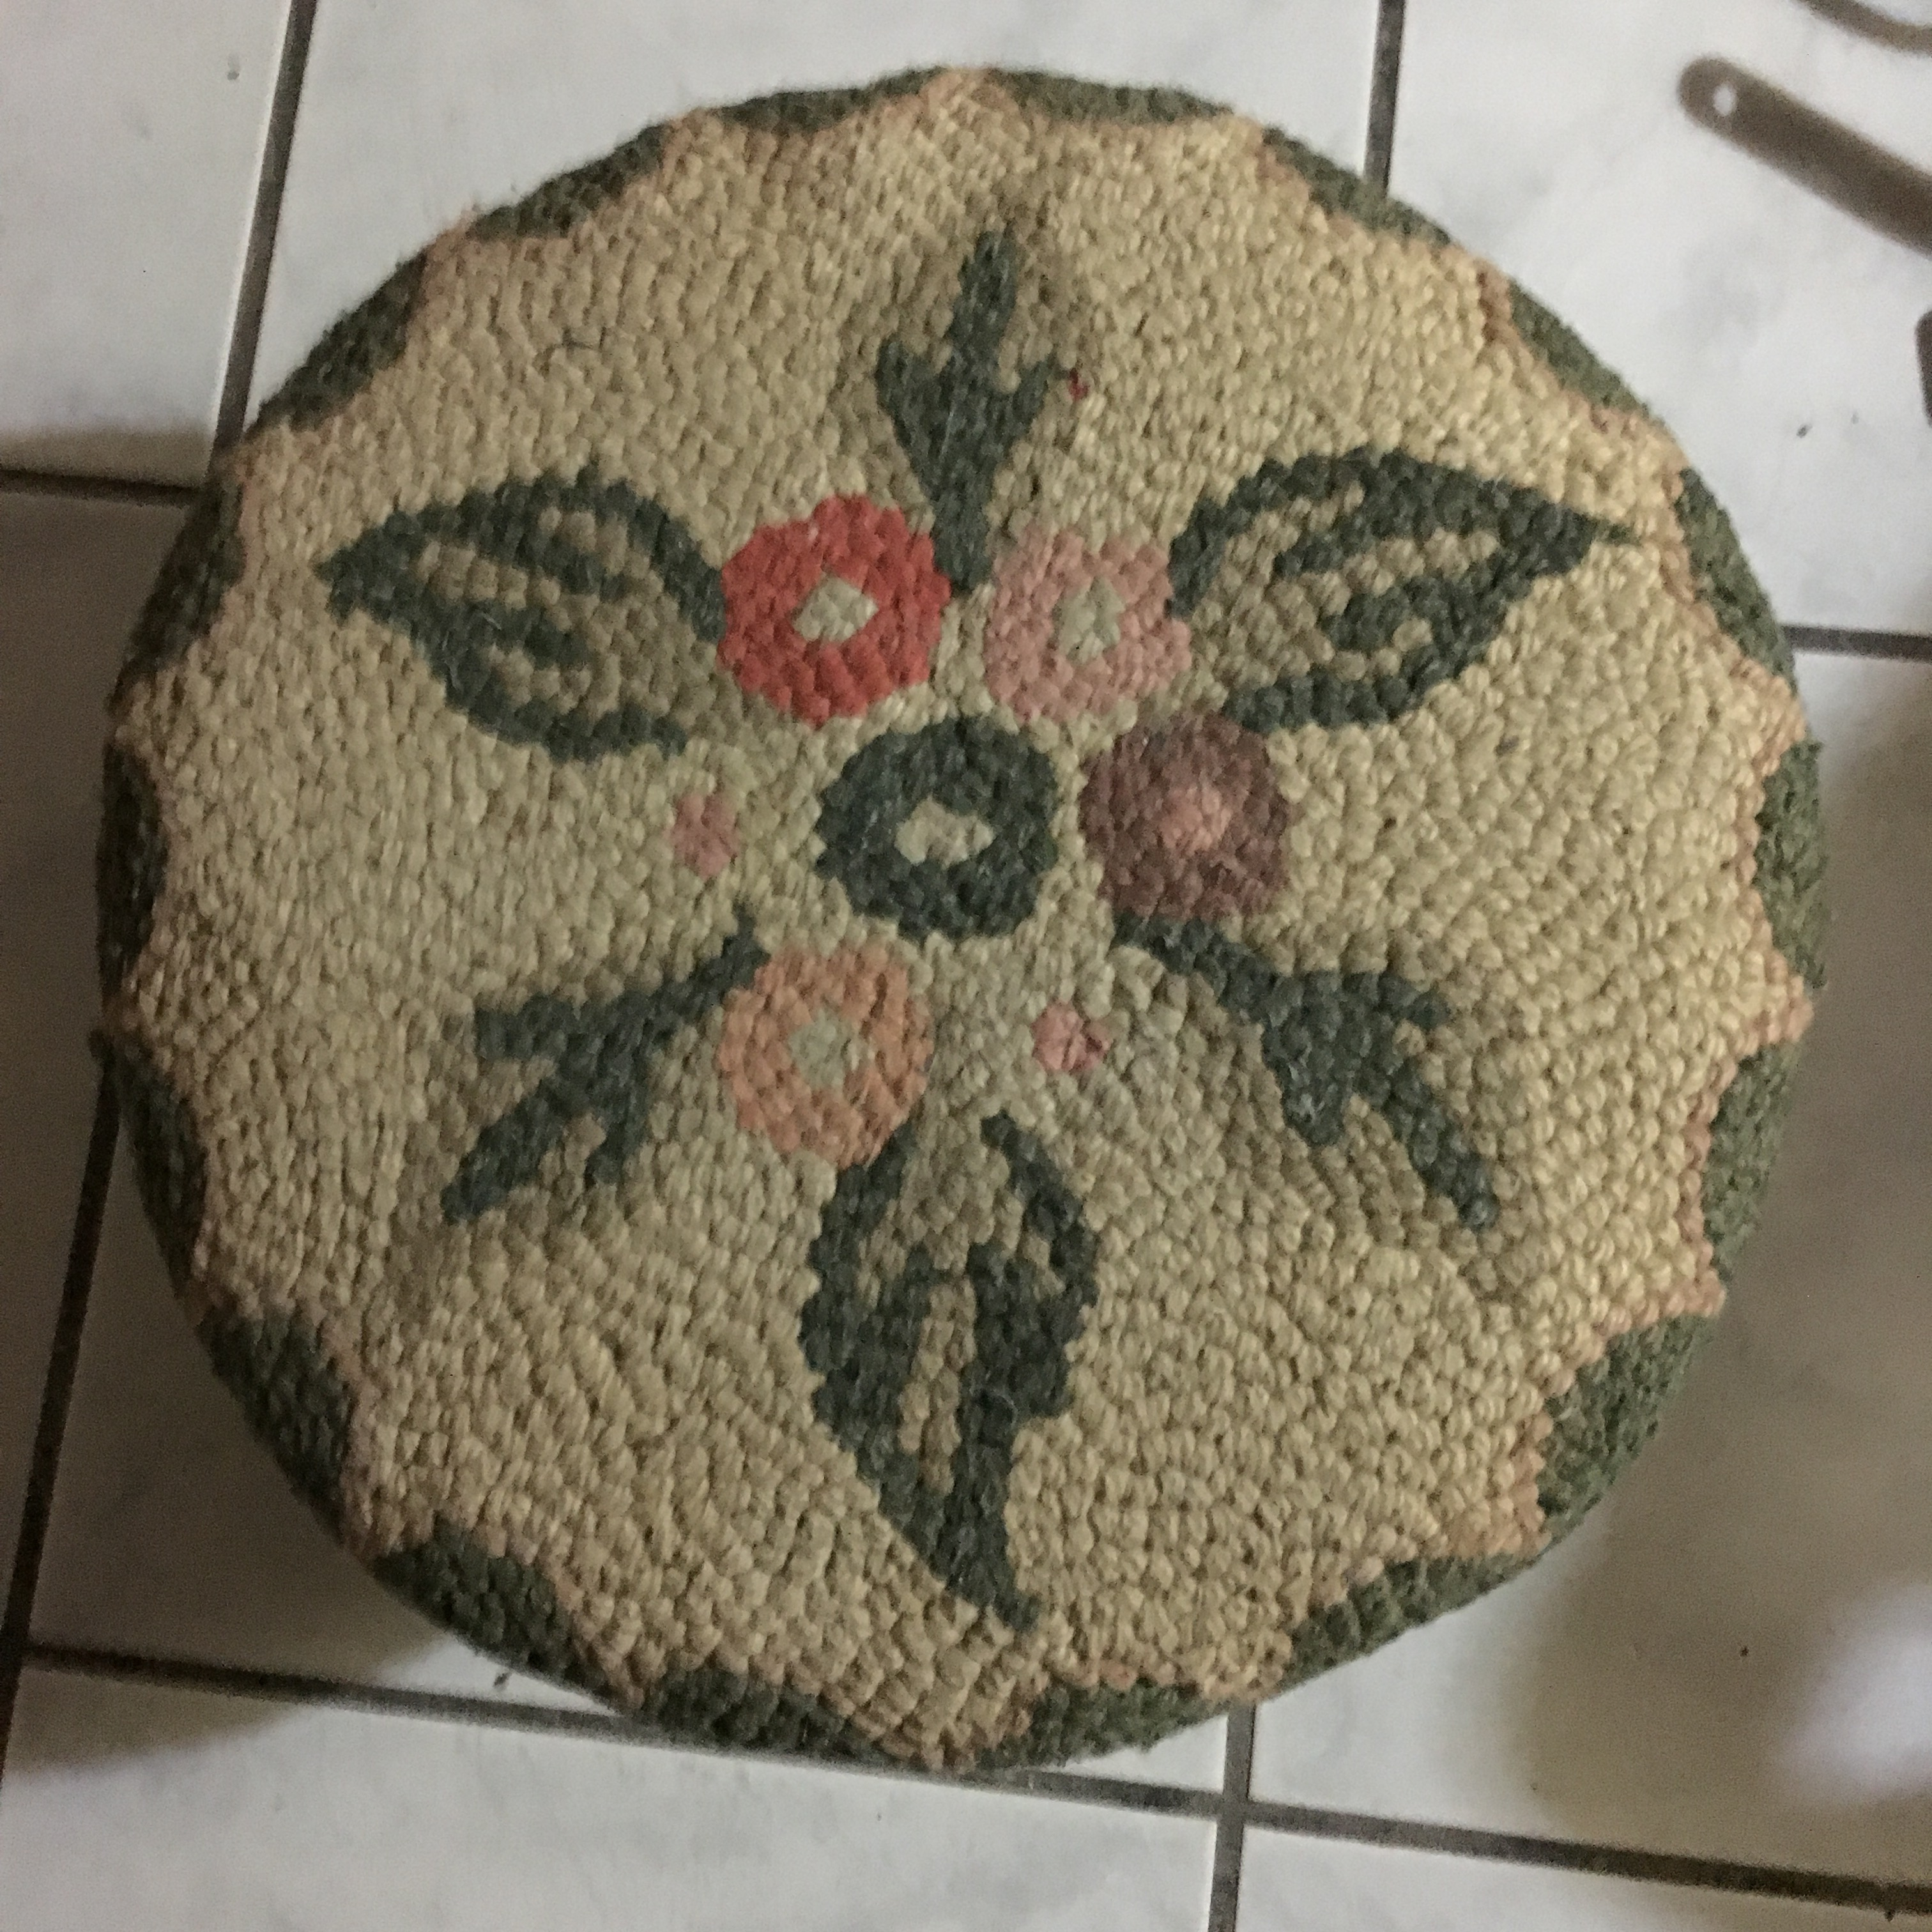 second hand store $4 footstool